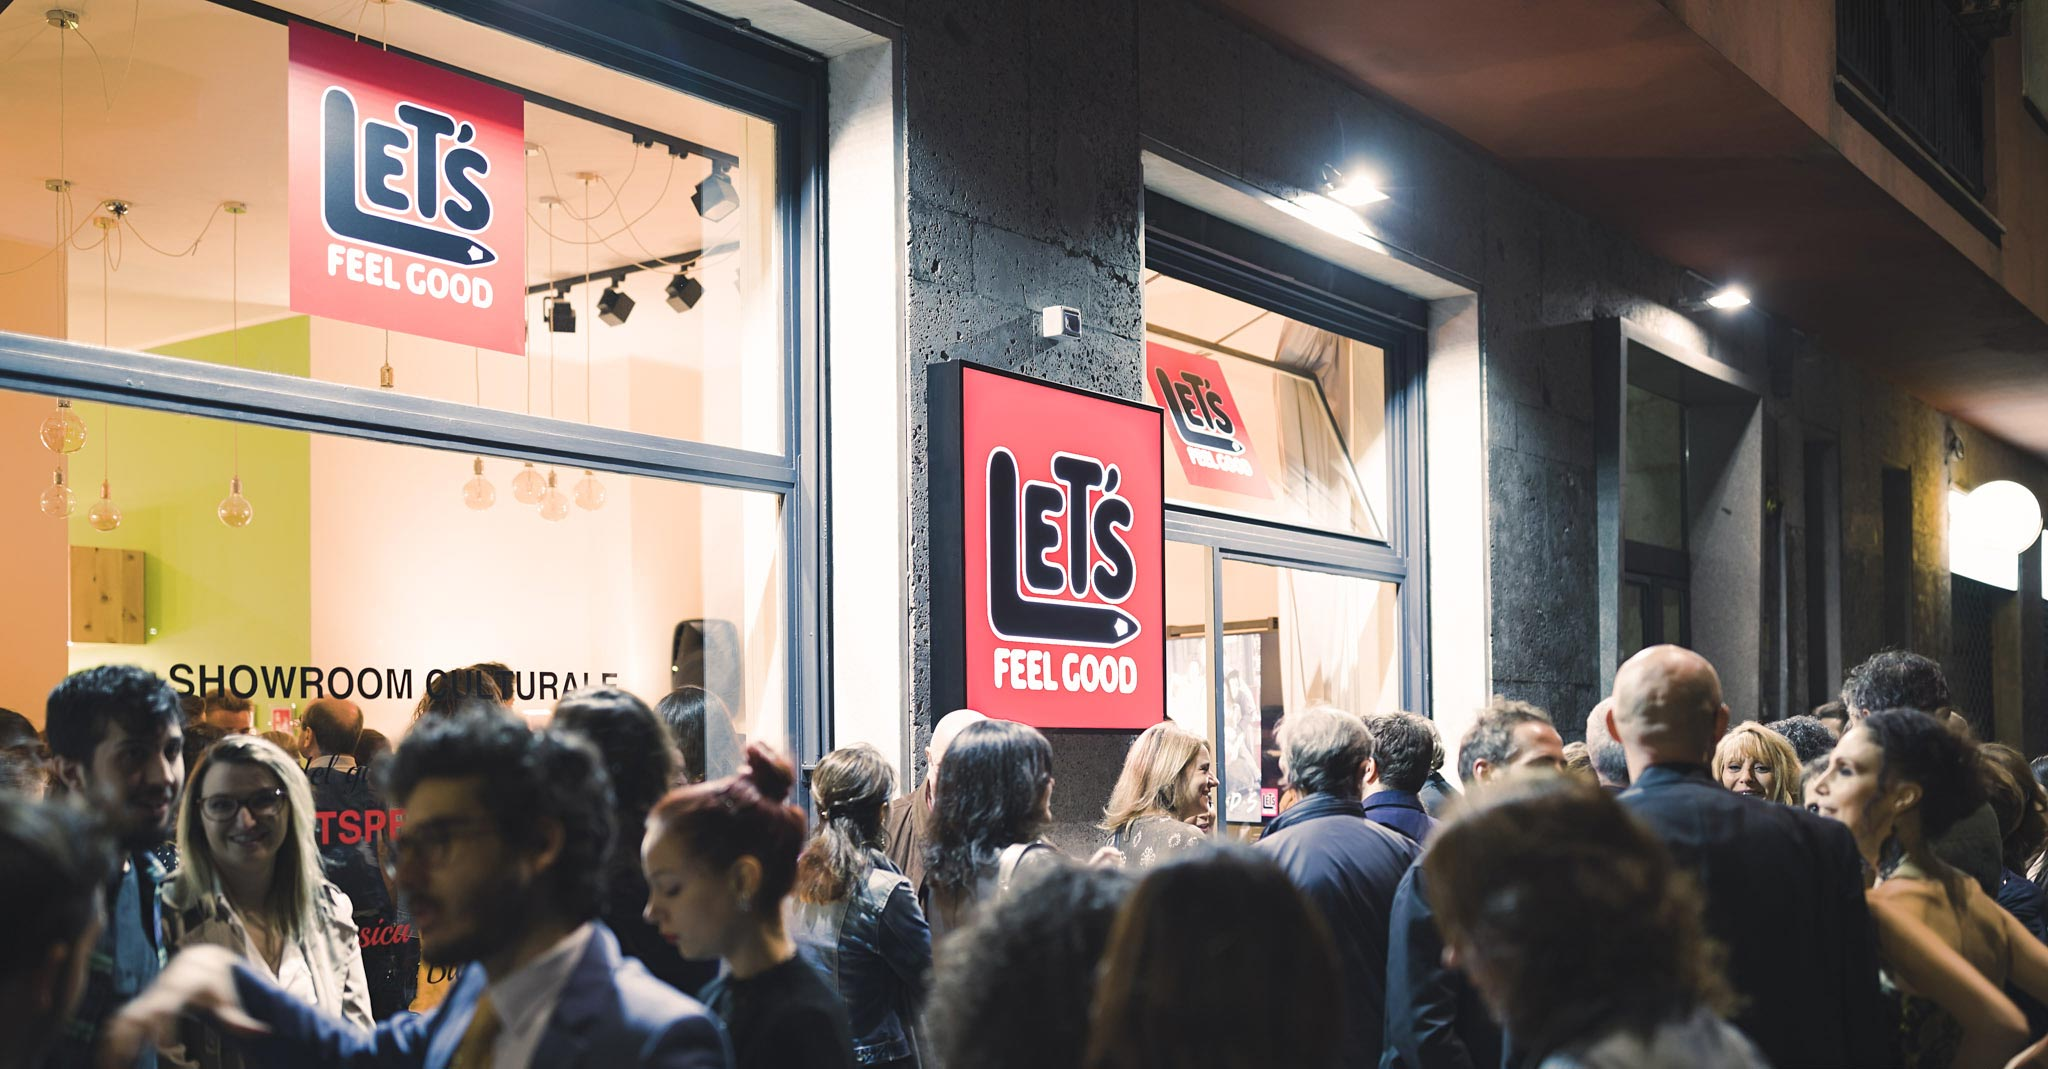 Let\'s Feel Good Milano | Showroom Culturale